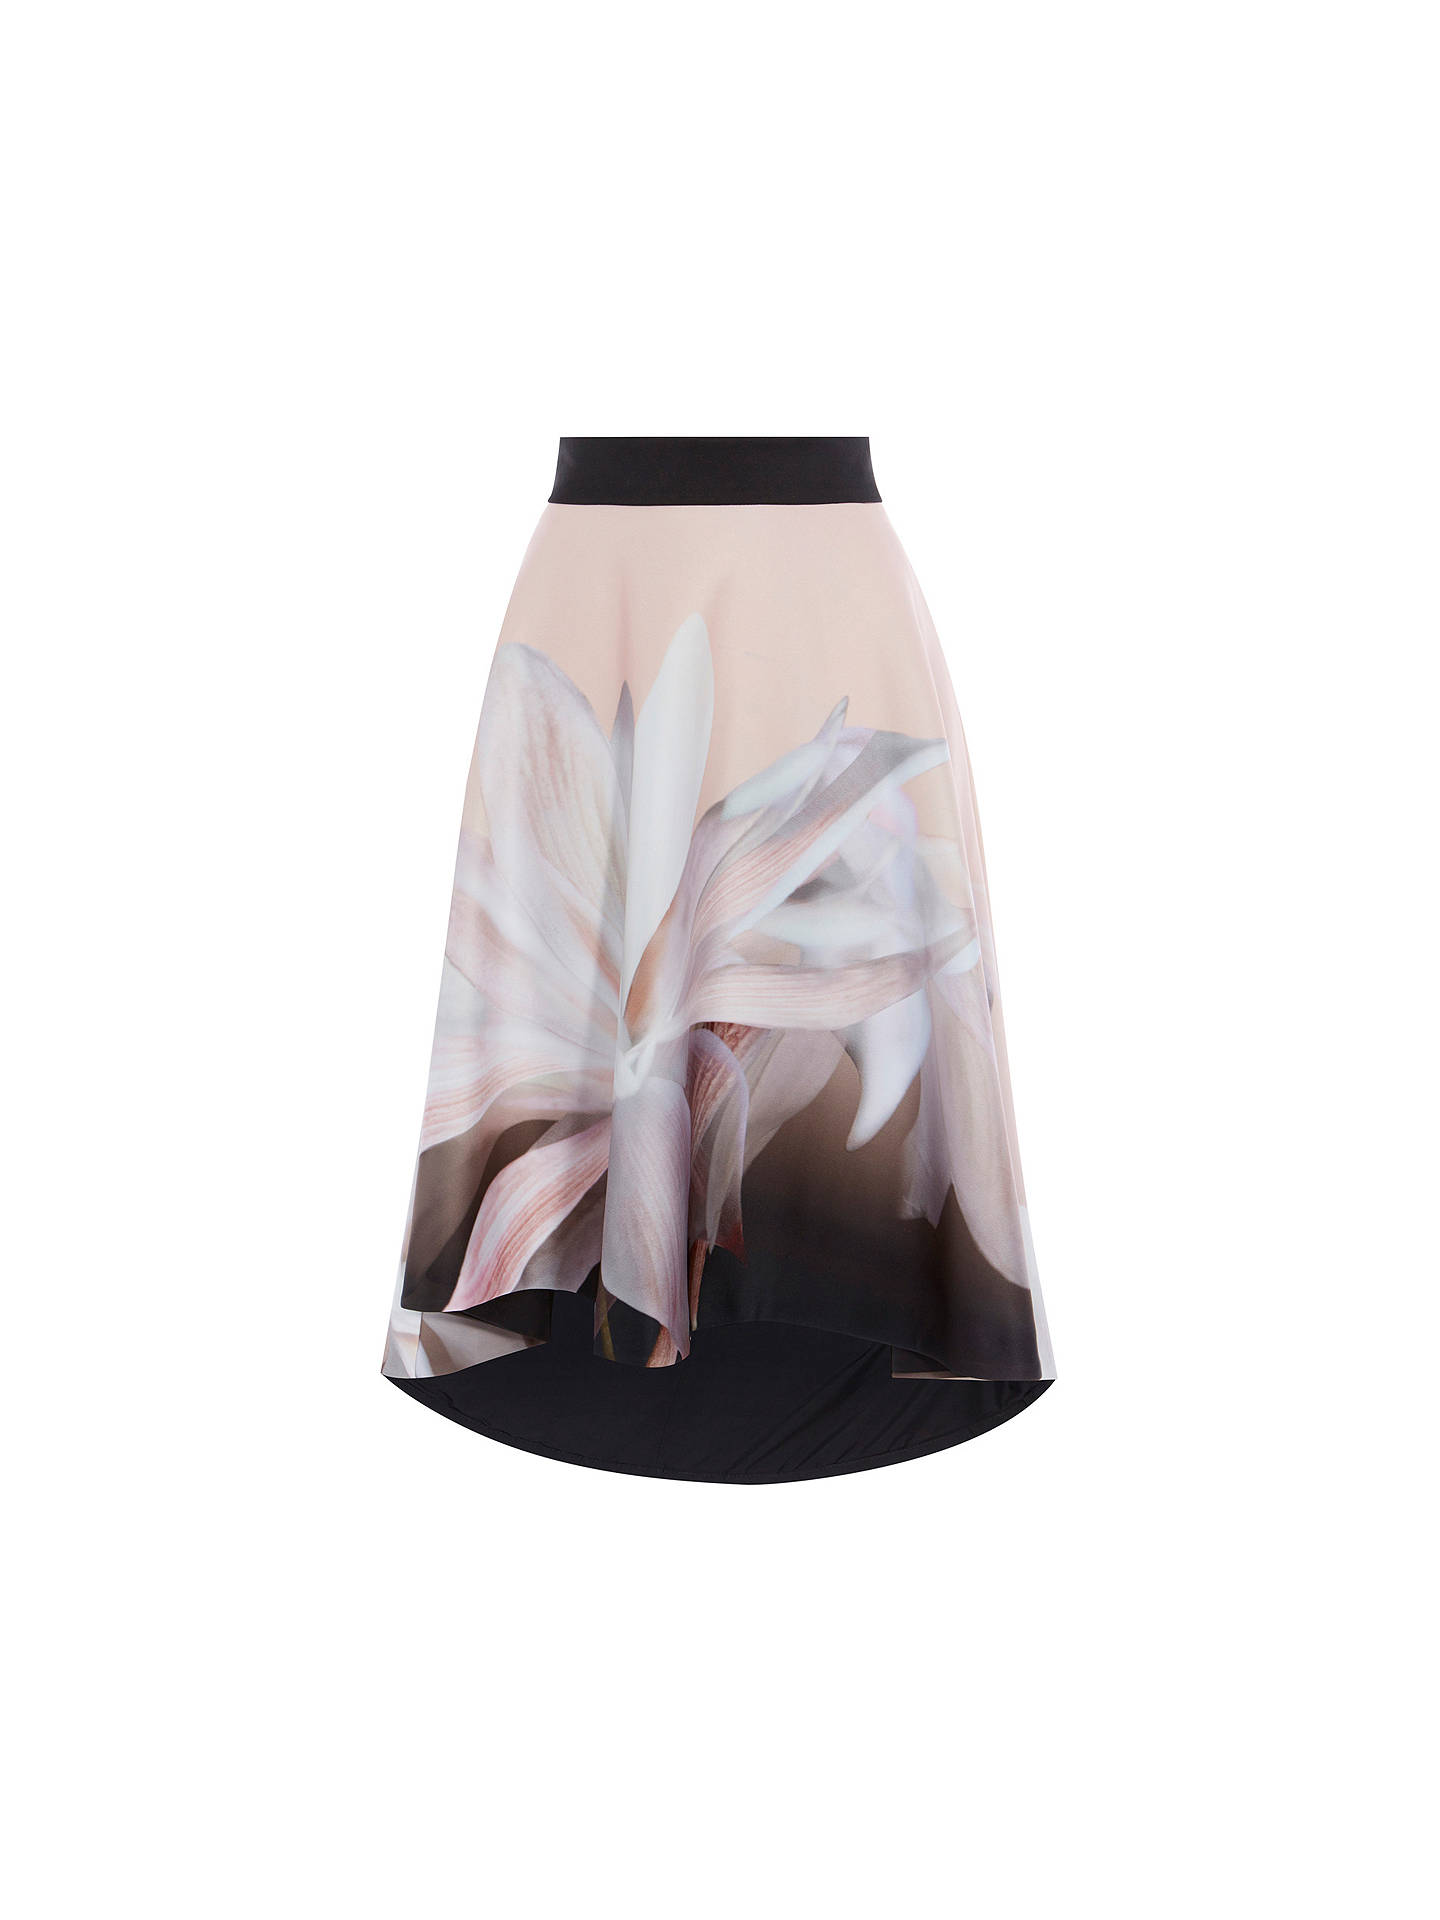 BuyCoast Vina Print Skirt, Multi, 6 Online at johnlewis.com